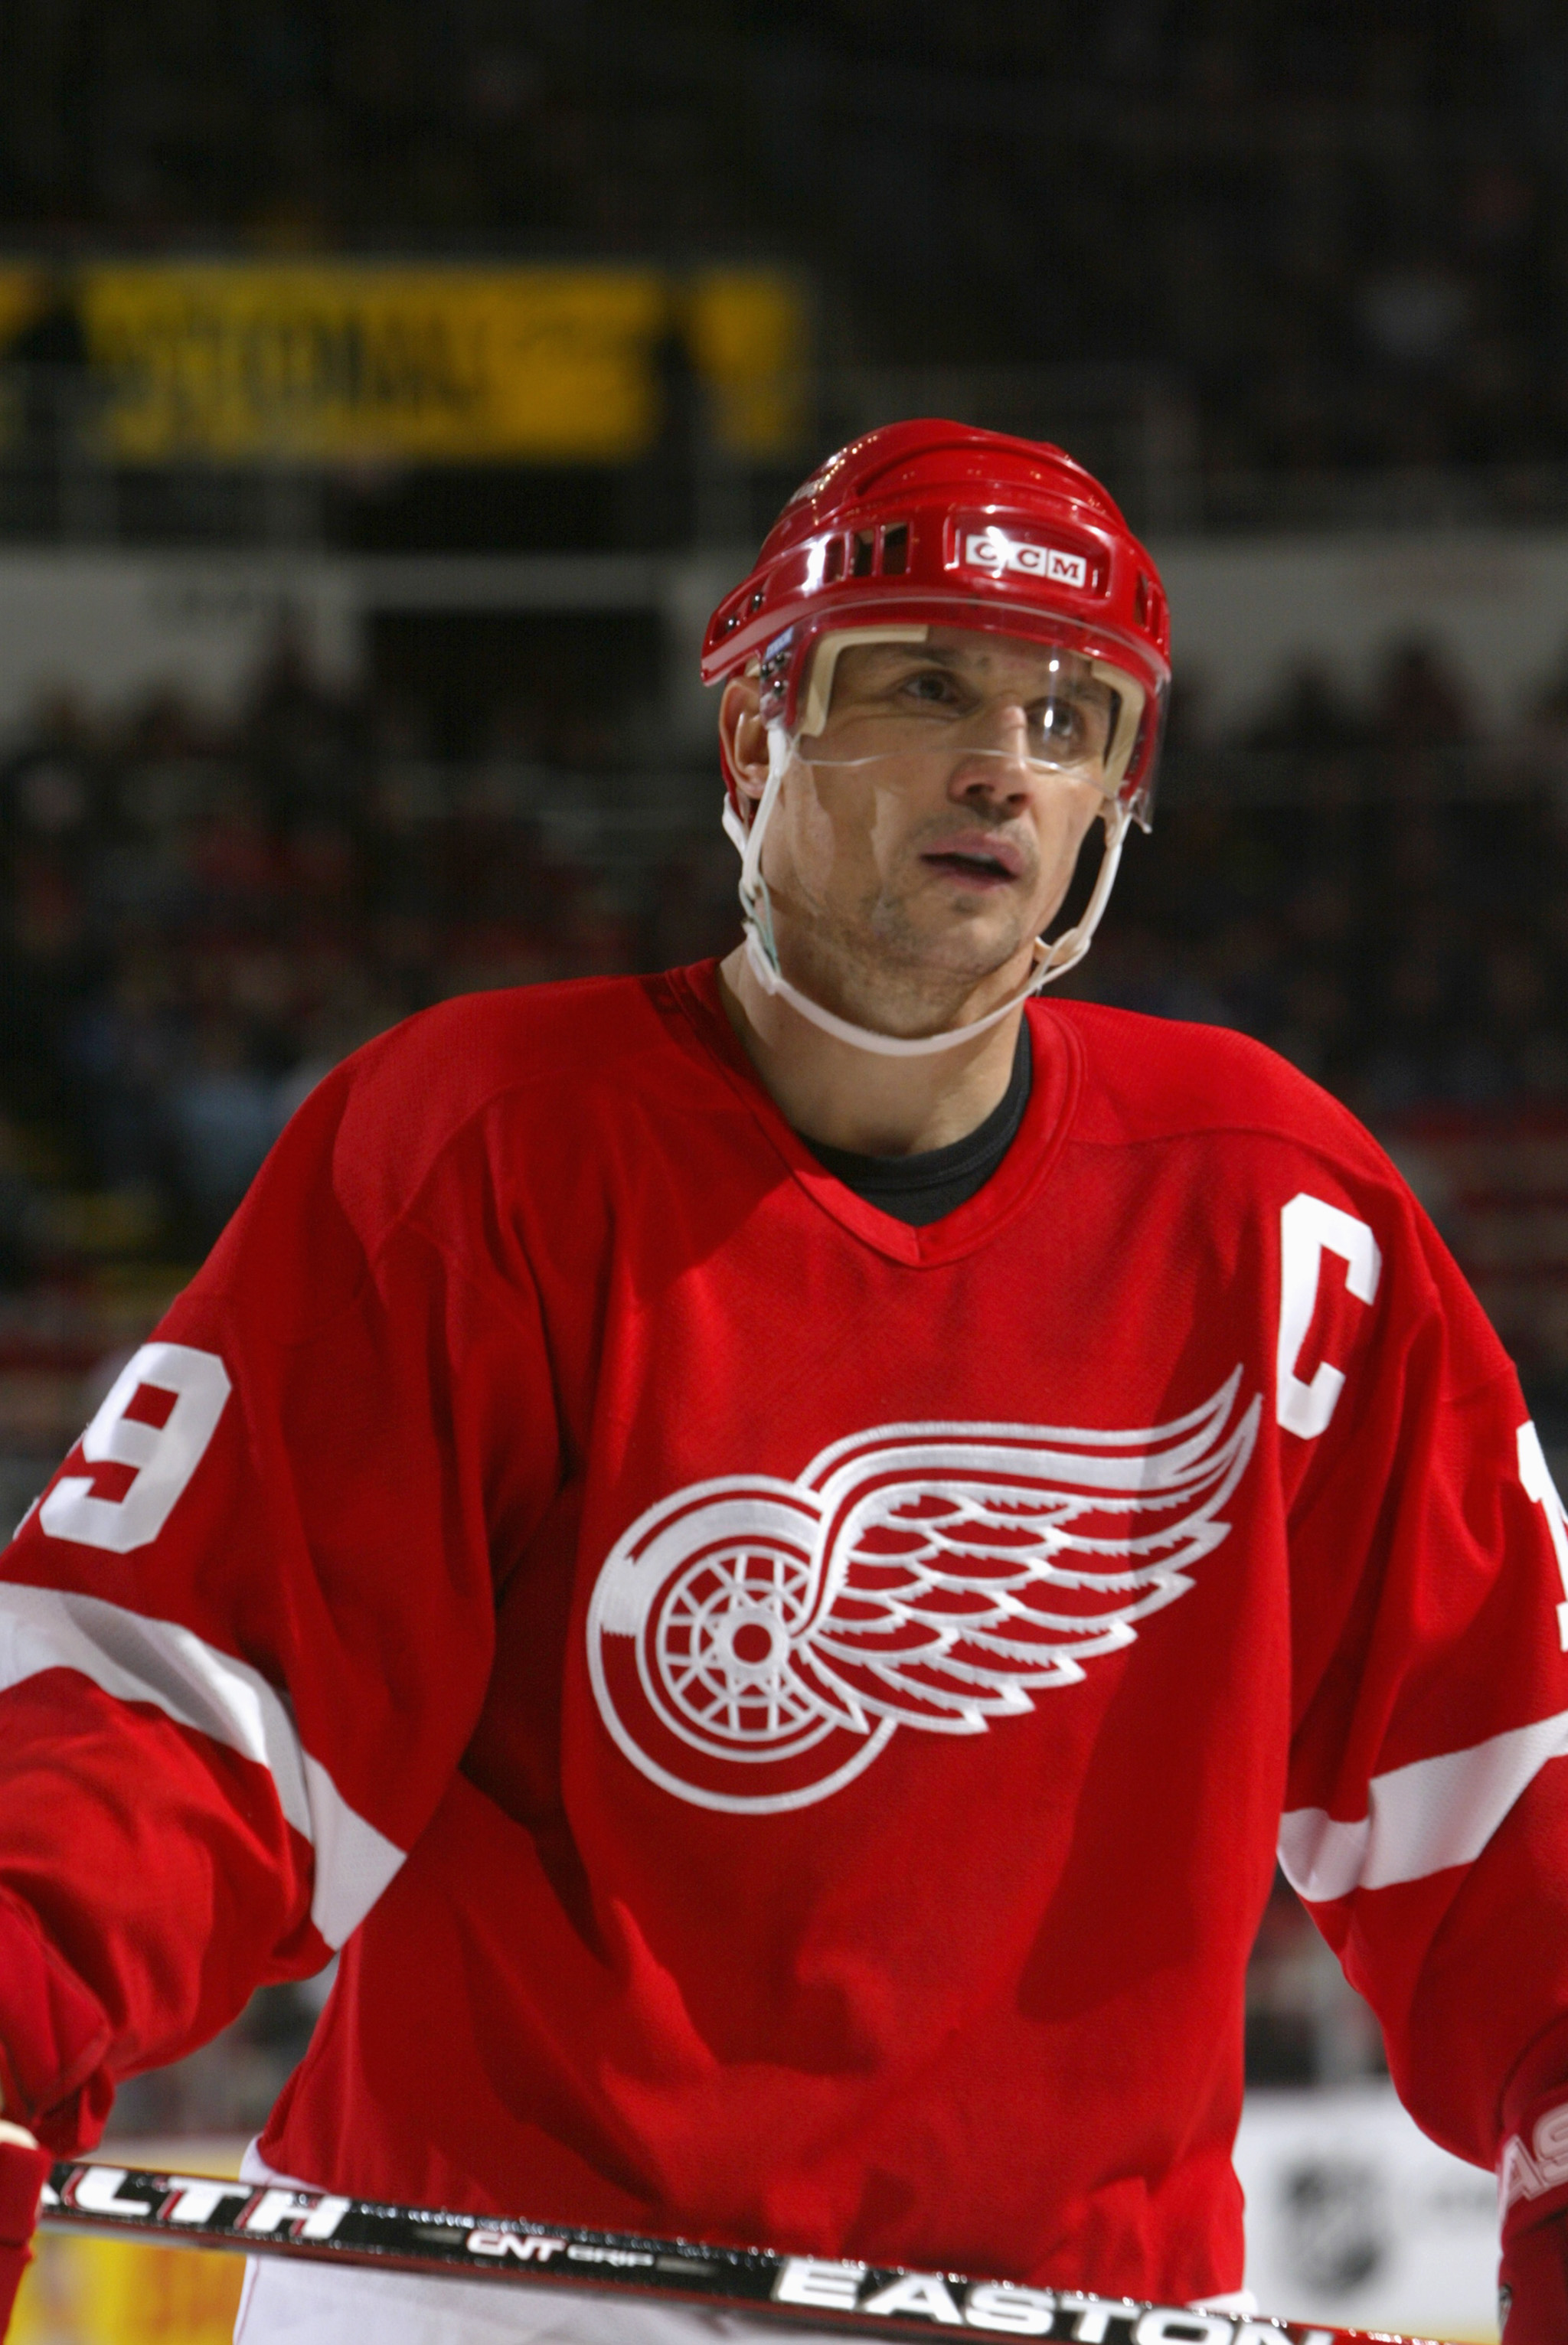 DETROIT - FEBRUARY 8:  Steve Yzerman #19 of the Detroit Red Wings looks on against the Nashville Predators at Joe Louis Arena on February 8, 2006 in Detroit, Michigan. The Red Wings won 6-0. (Photo By Dave Sandford/Getty Images)